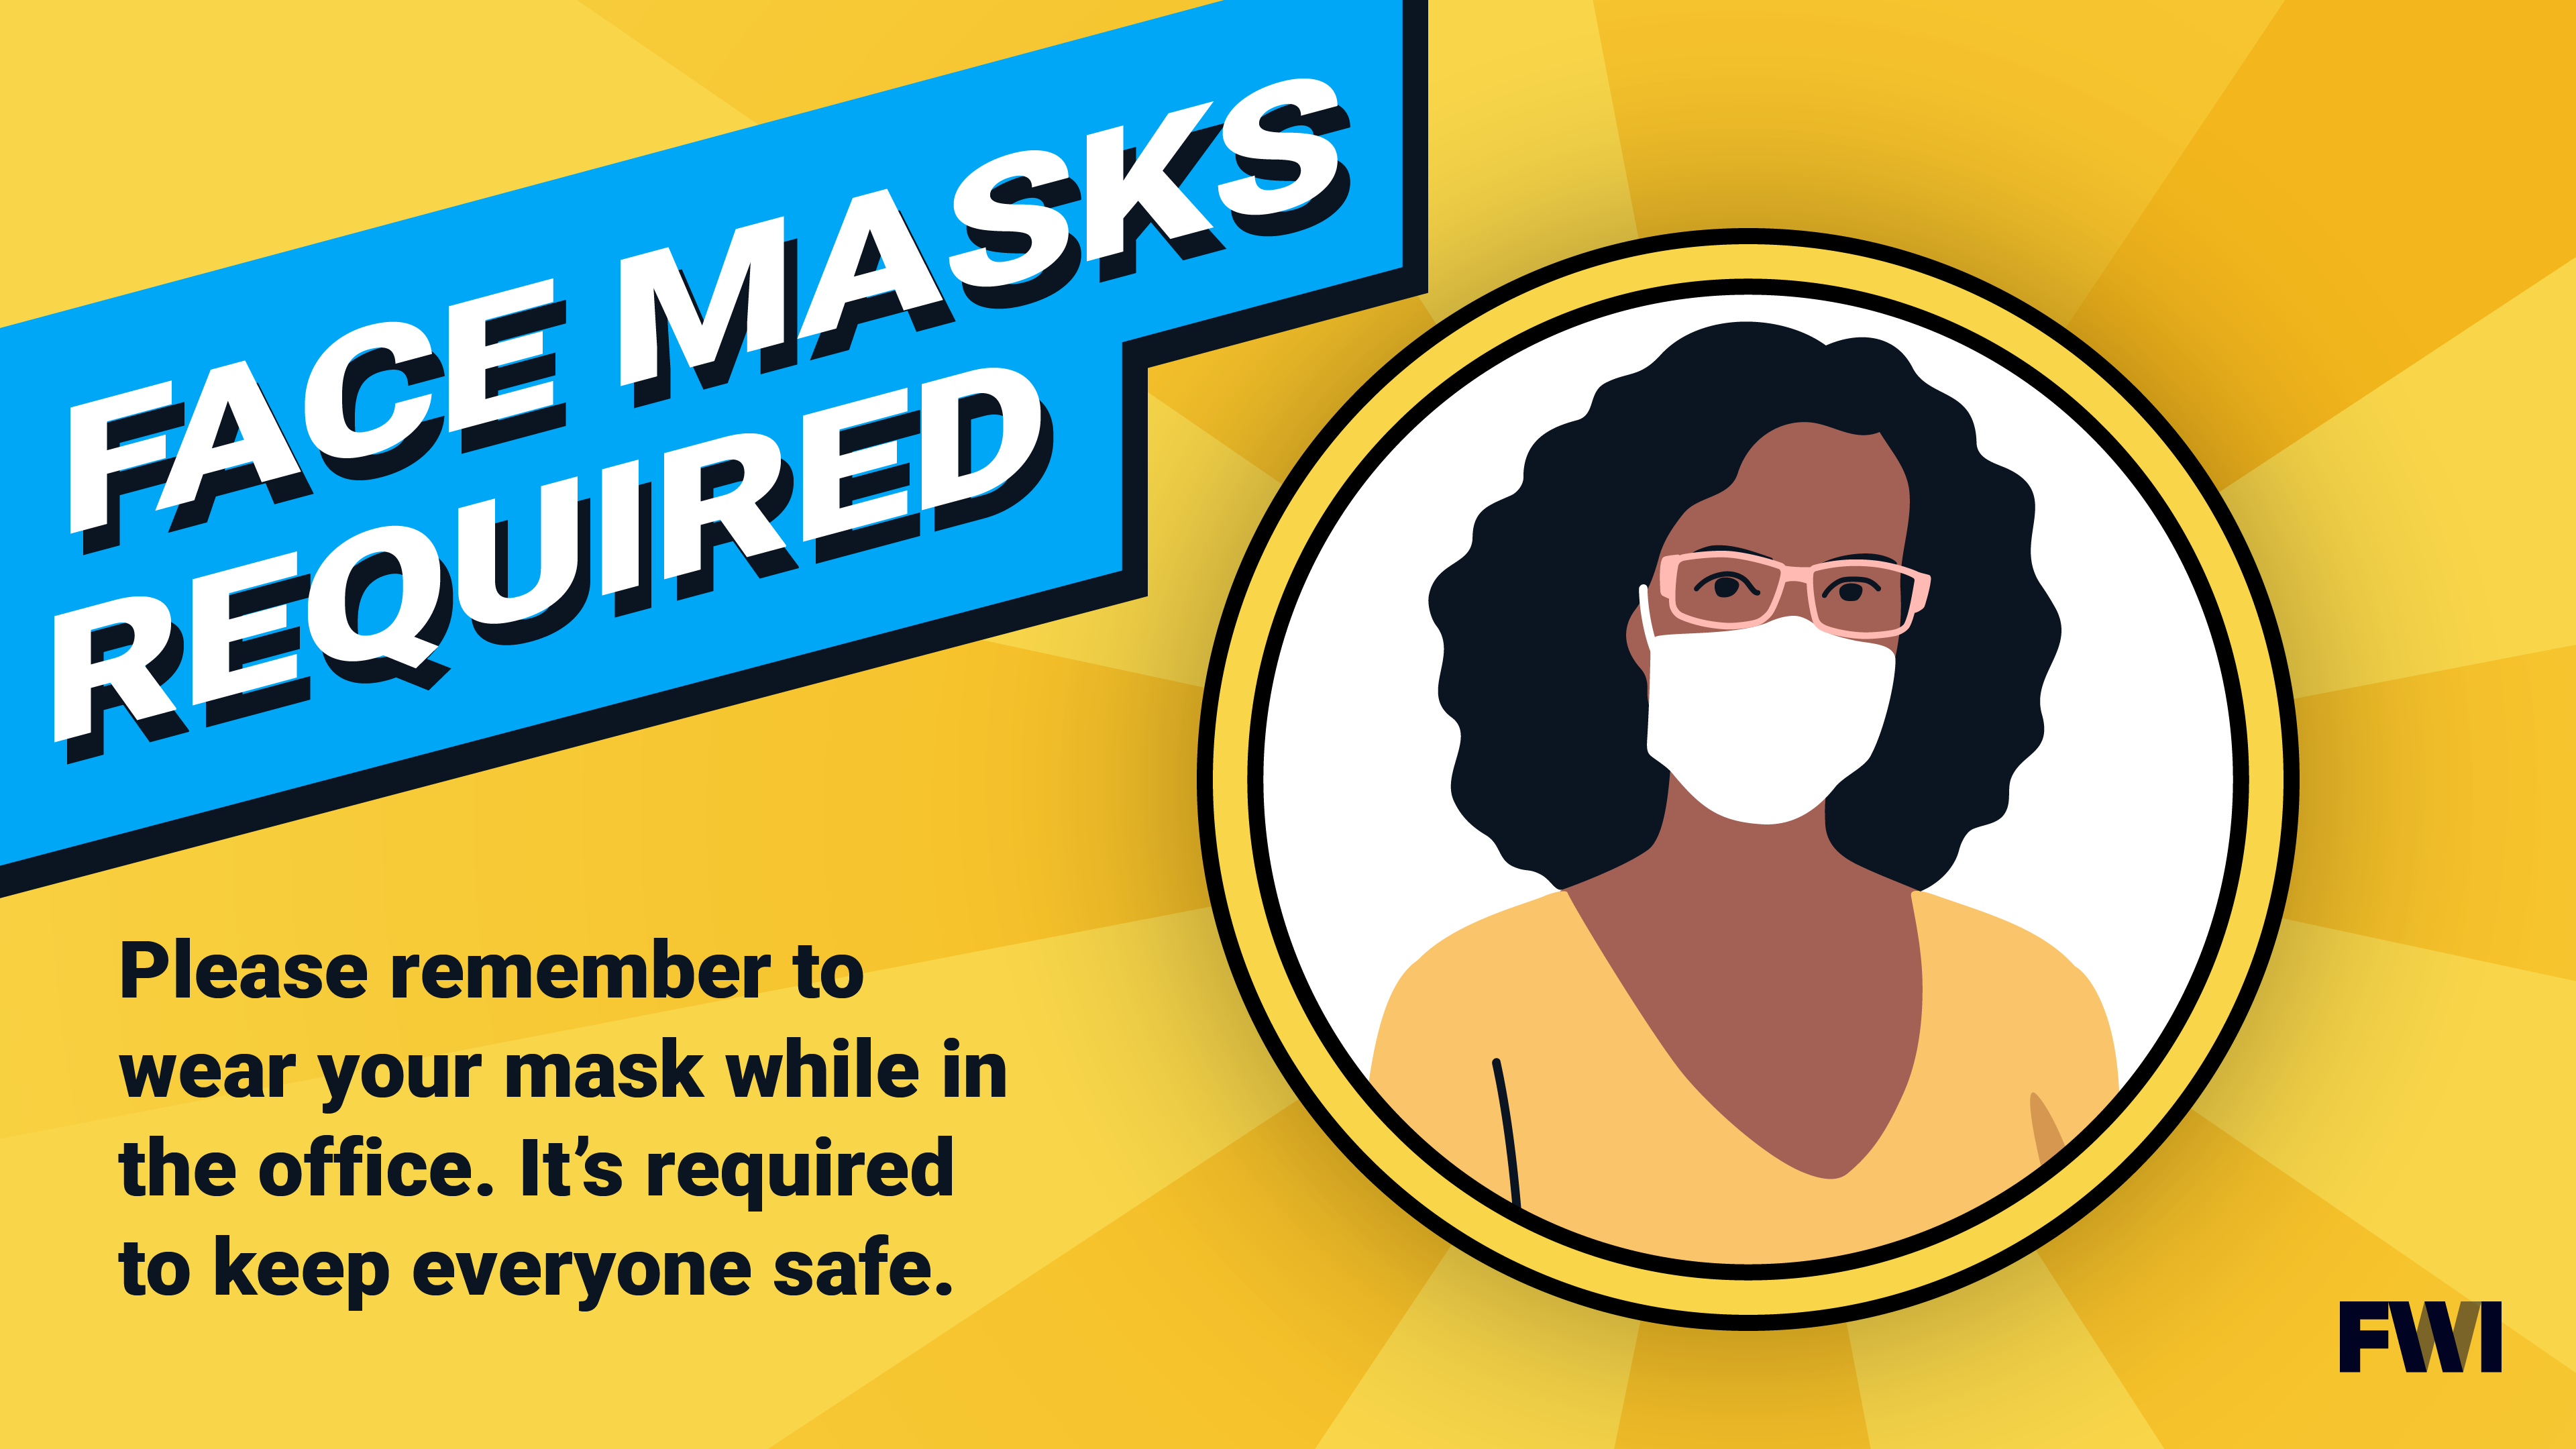 face mask required in office, image of female, horizontal content download